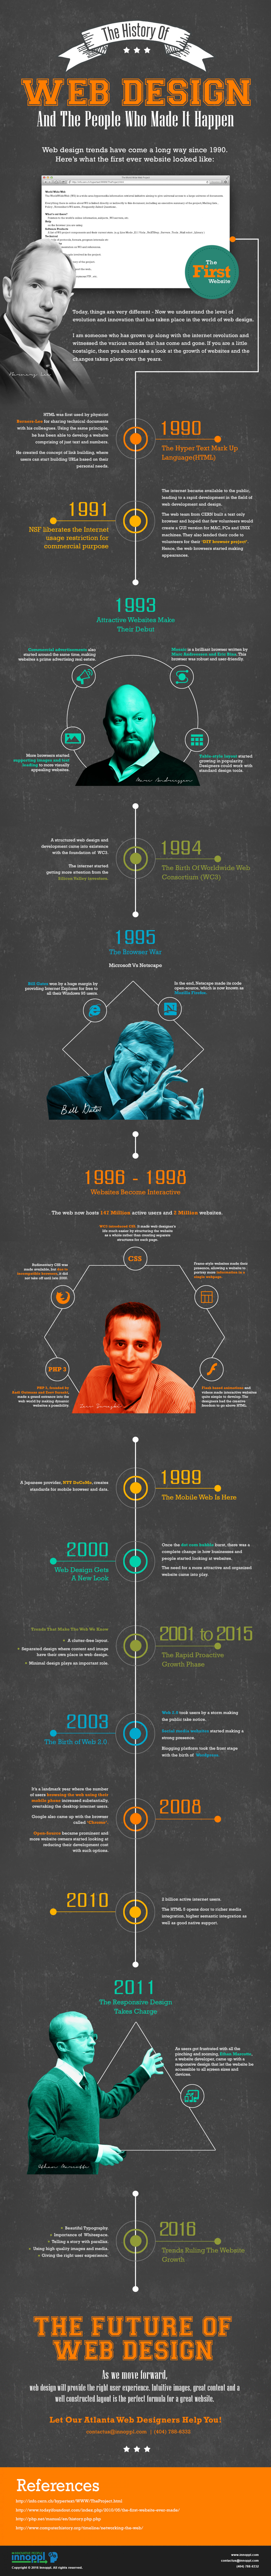 The History Of Web Design And The People Who Made It happen Infographic